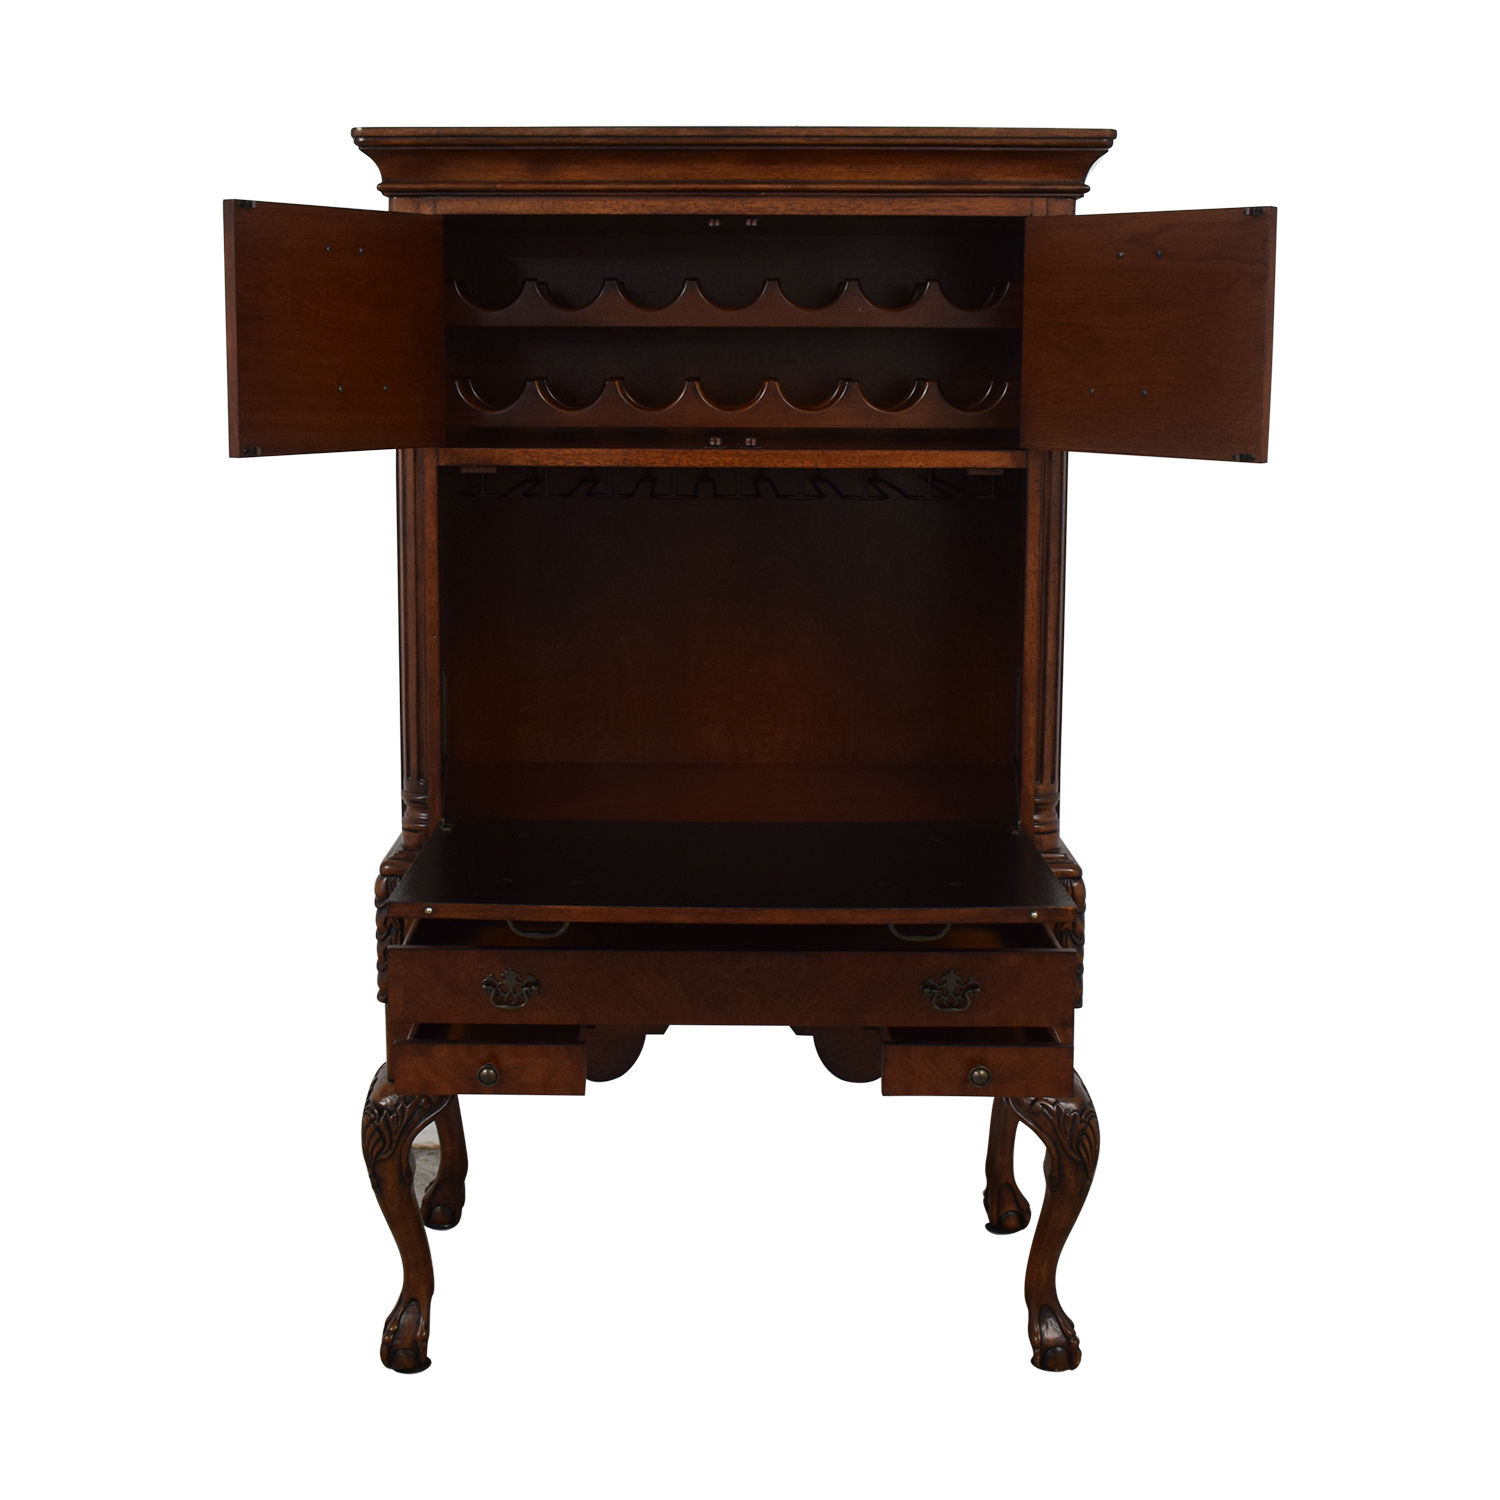 Hekman Furniture Hekman Furniture Wine Cabinet dimensions